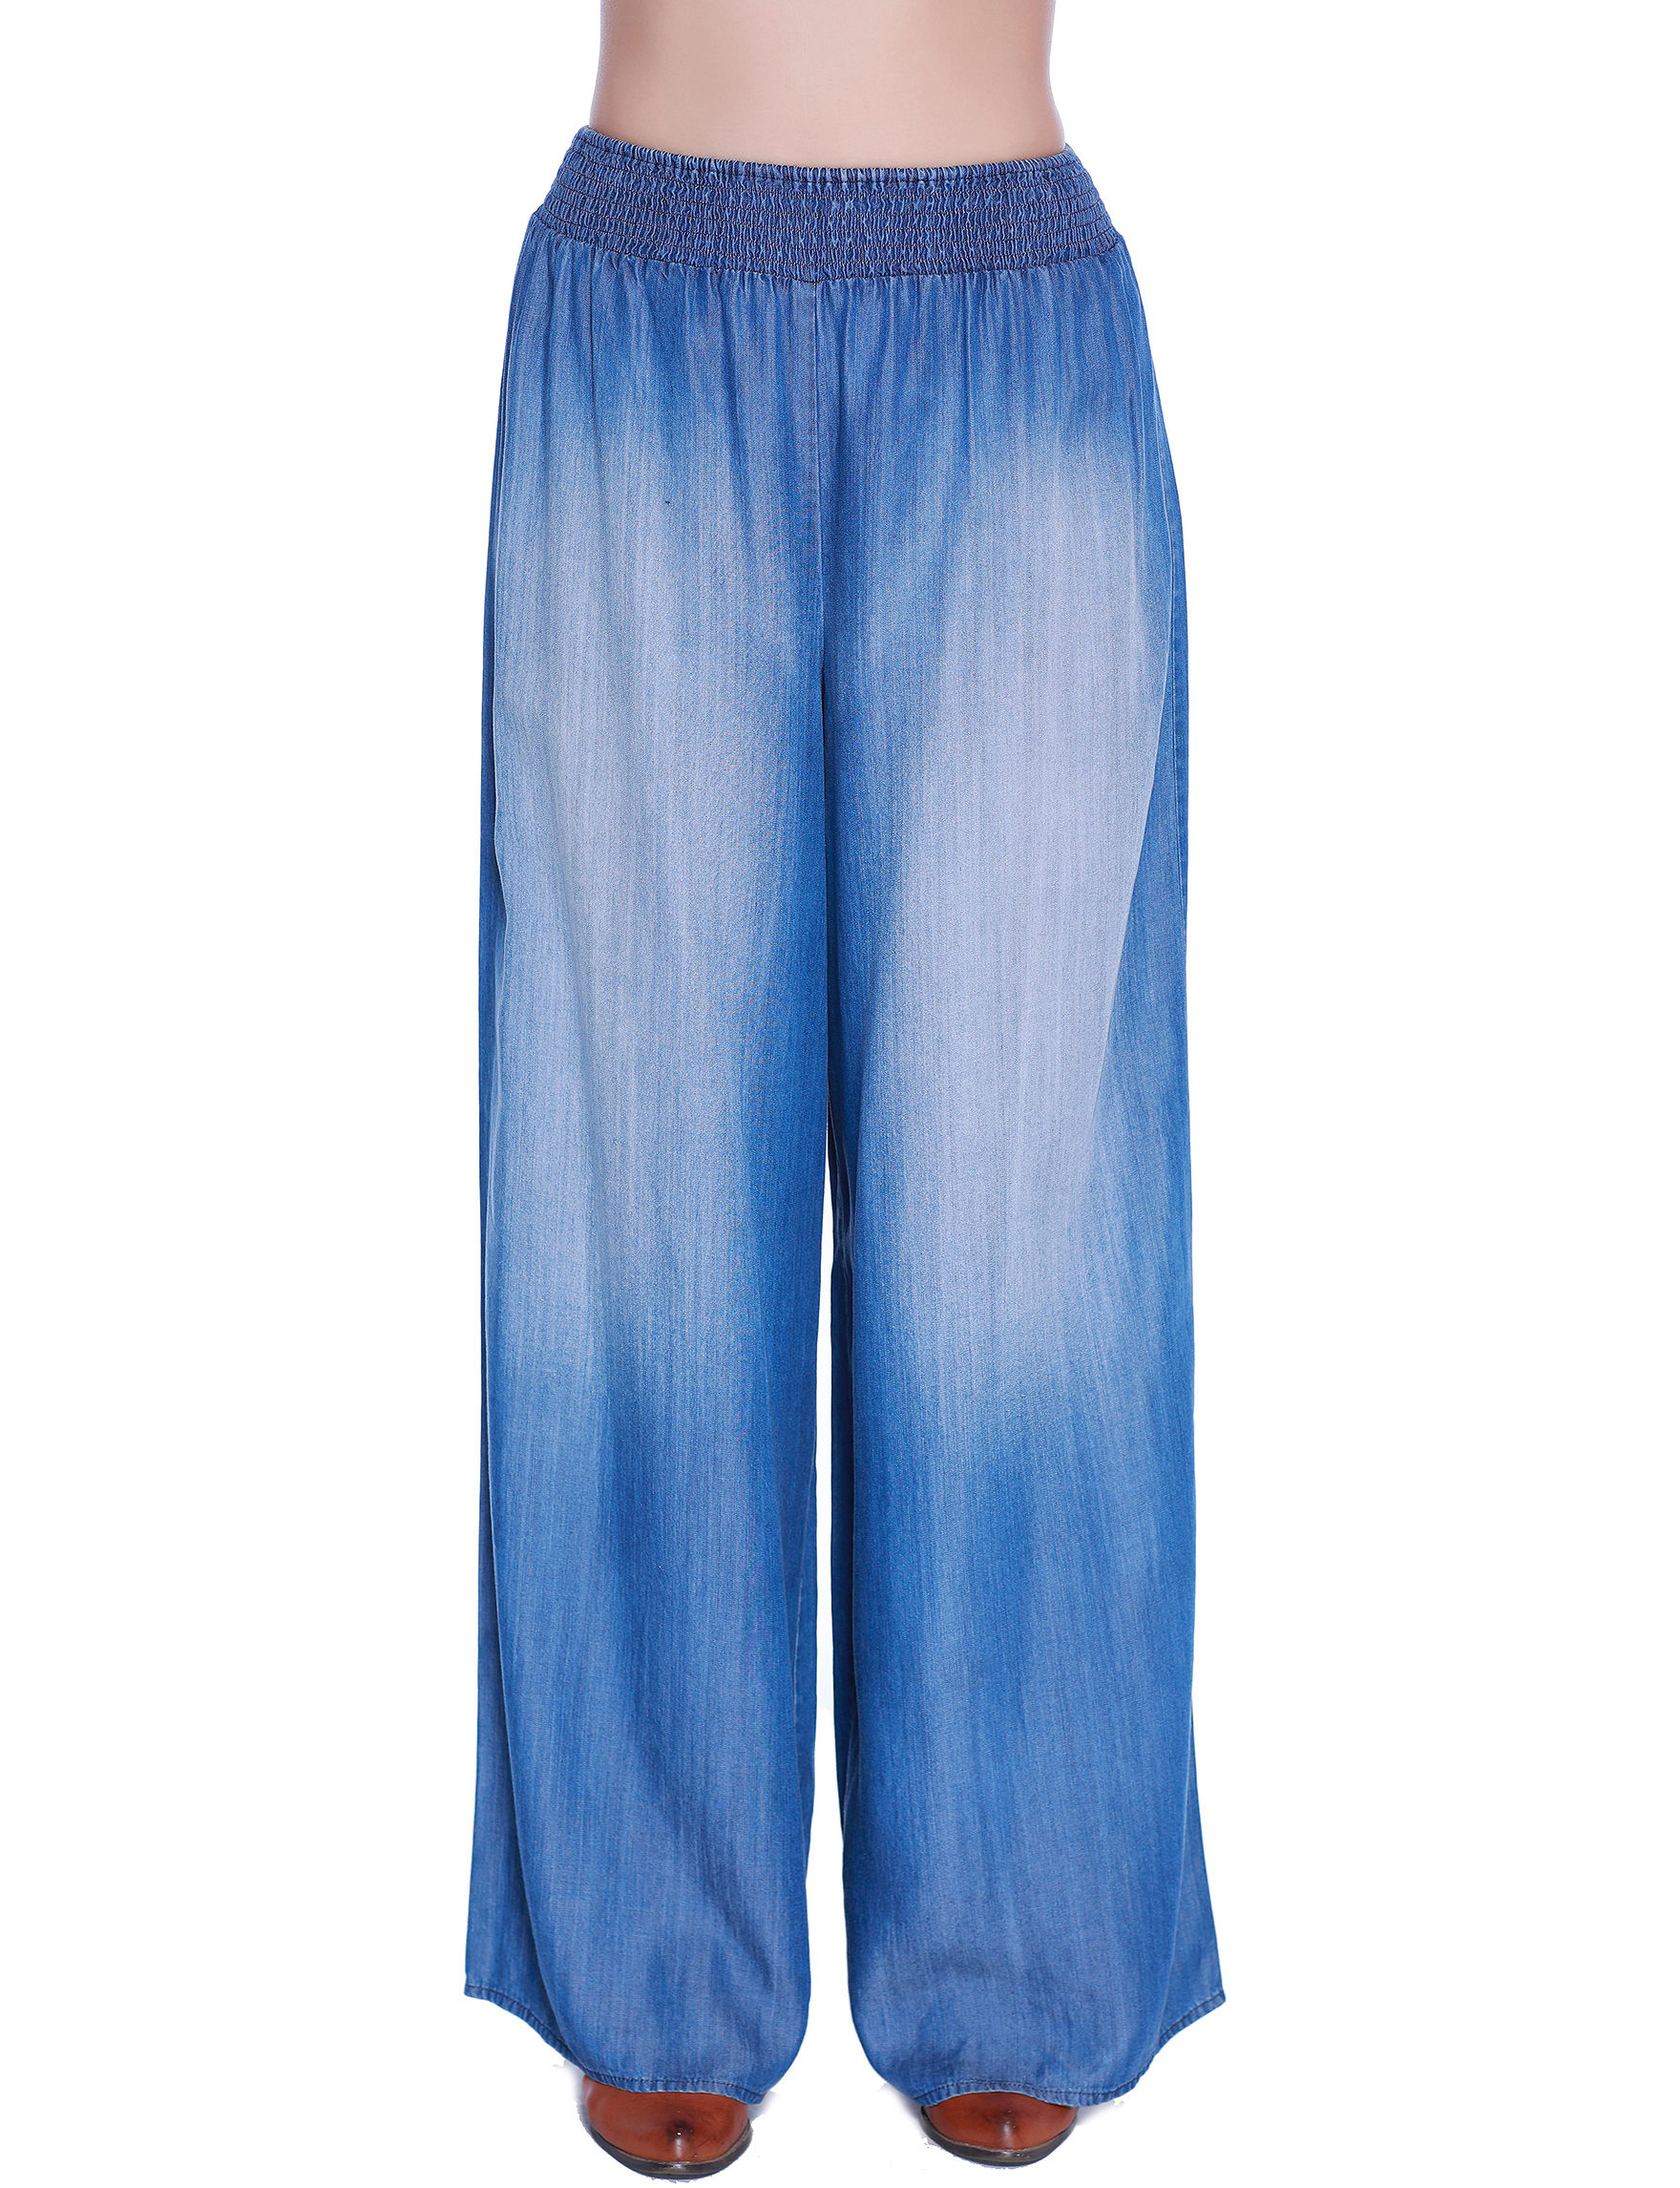 C + J Collections Blue Soft Pants